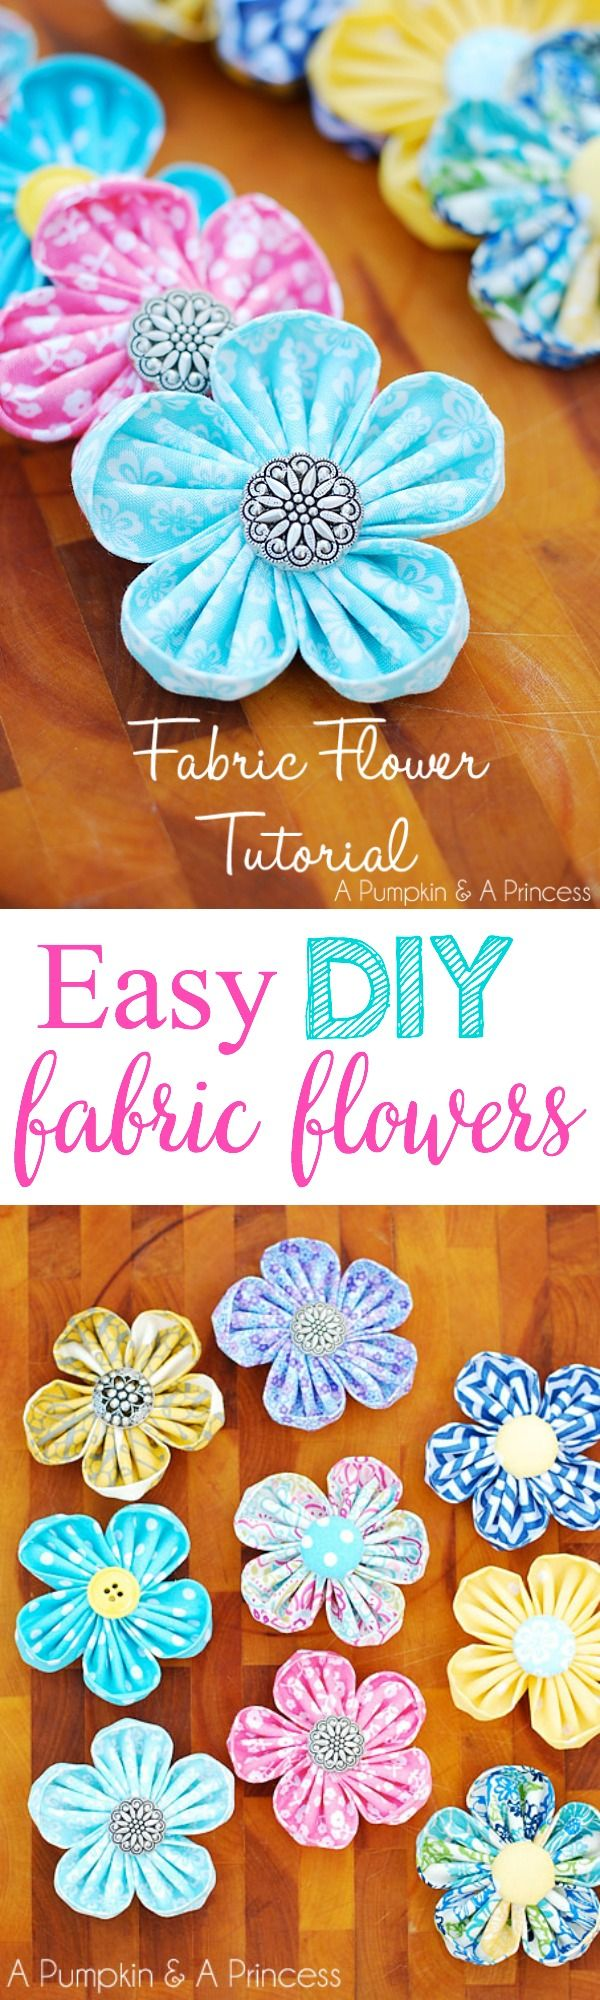 This round petal Kanzashi flower tutorial is so easy to make that you'll be hooked once you get started.